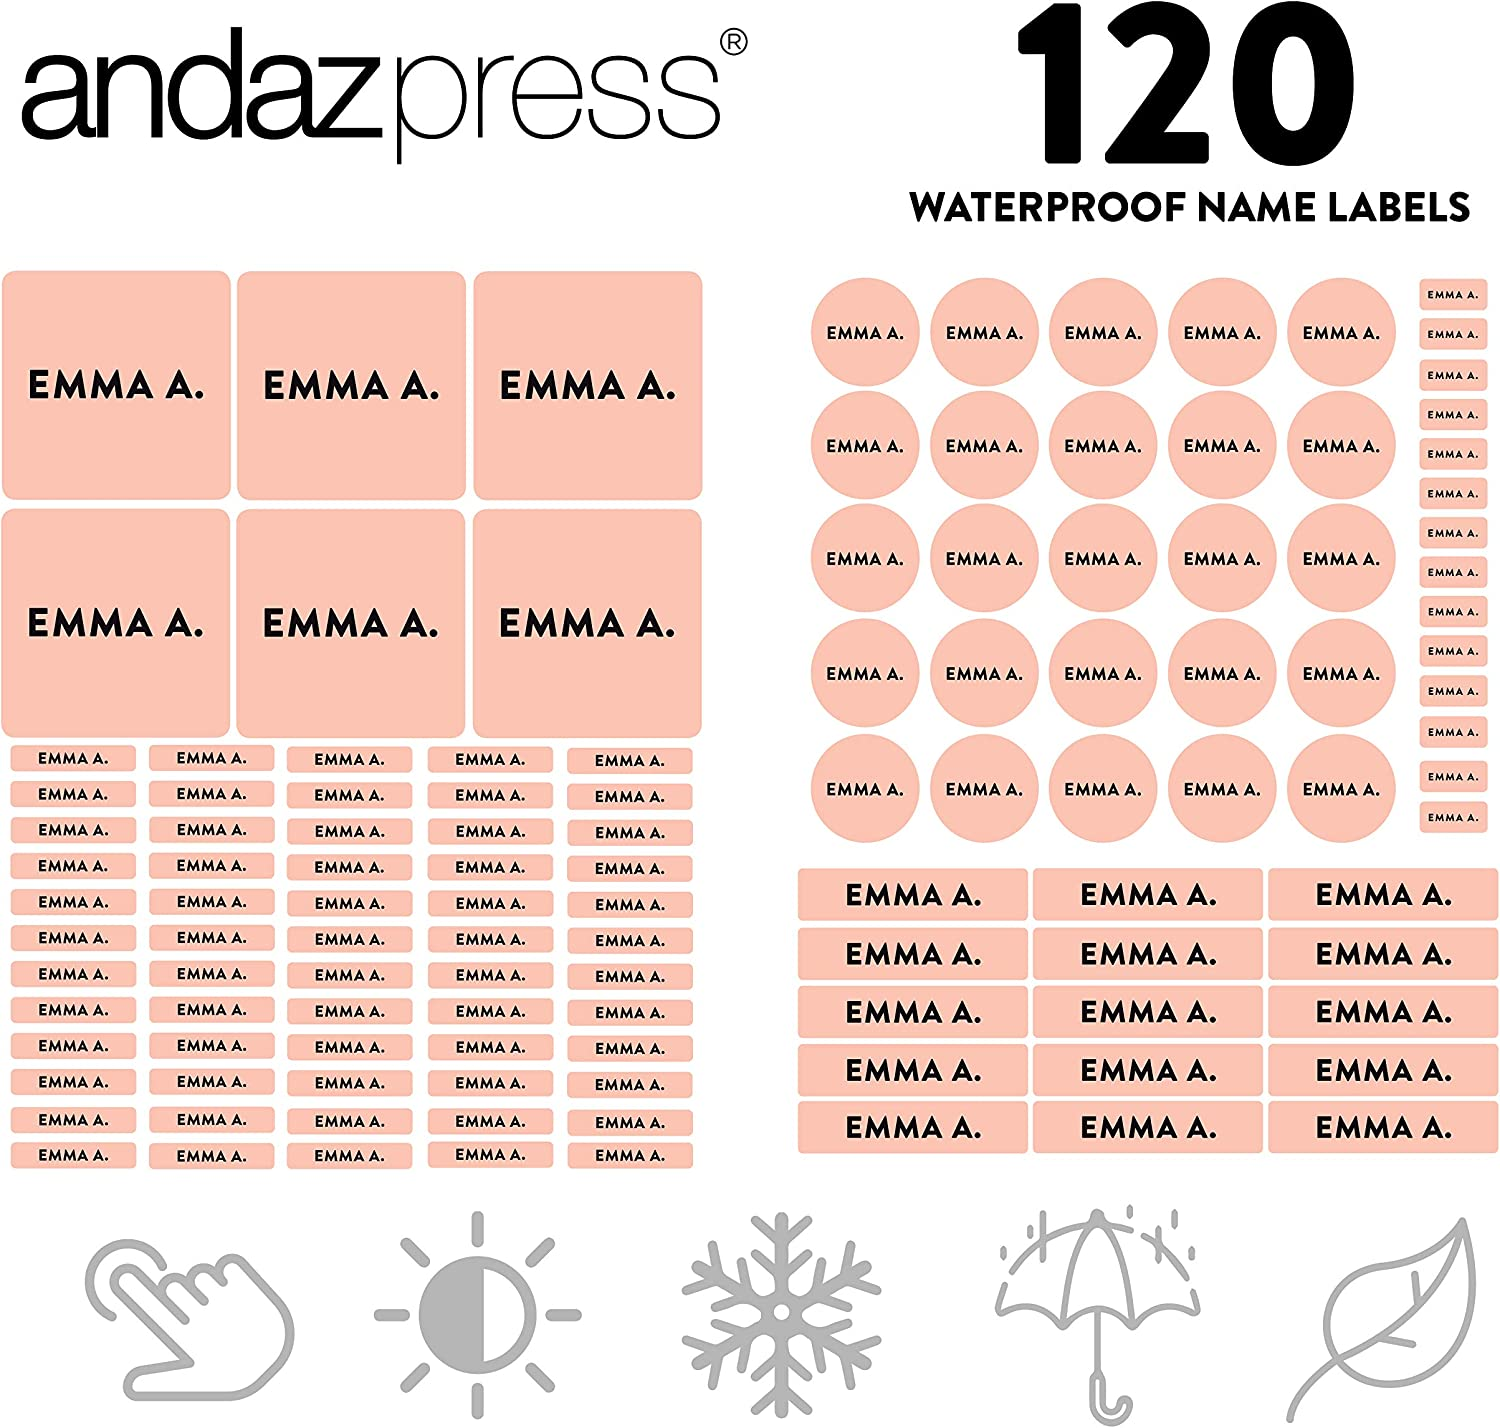 Andaz Press Custom Personalized Waterproof School Name Labels, Peach Champagne, 120-Pack, Kids Labels Combo Pack, Customizable Multi-Use Name Stickers for Preschool, Daycare, Supplies, Office, Camping